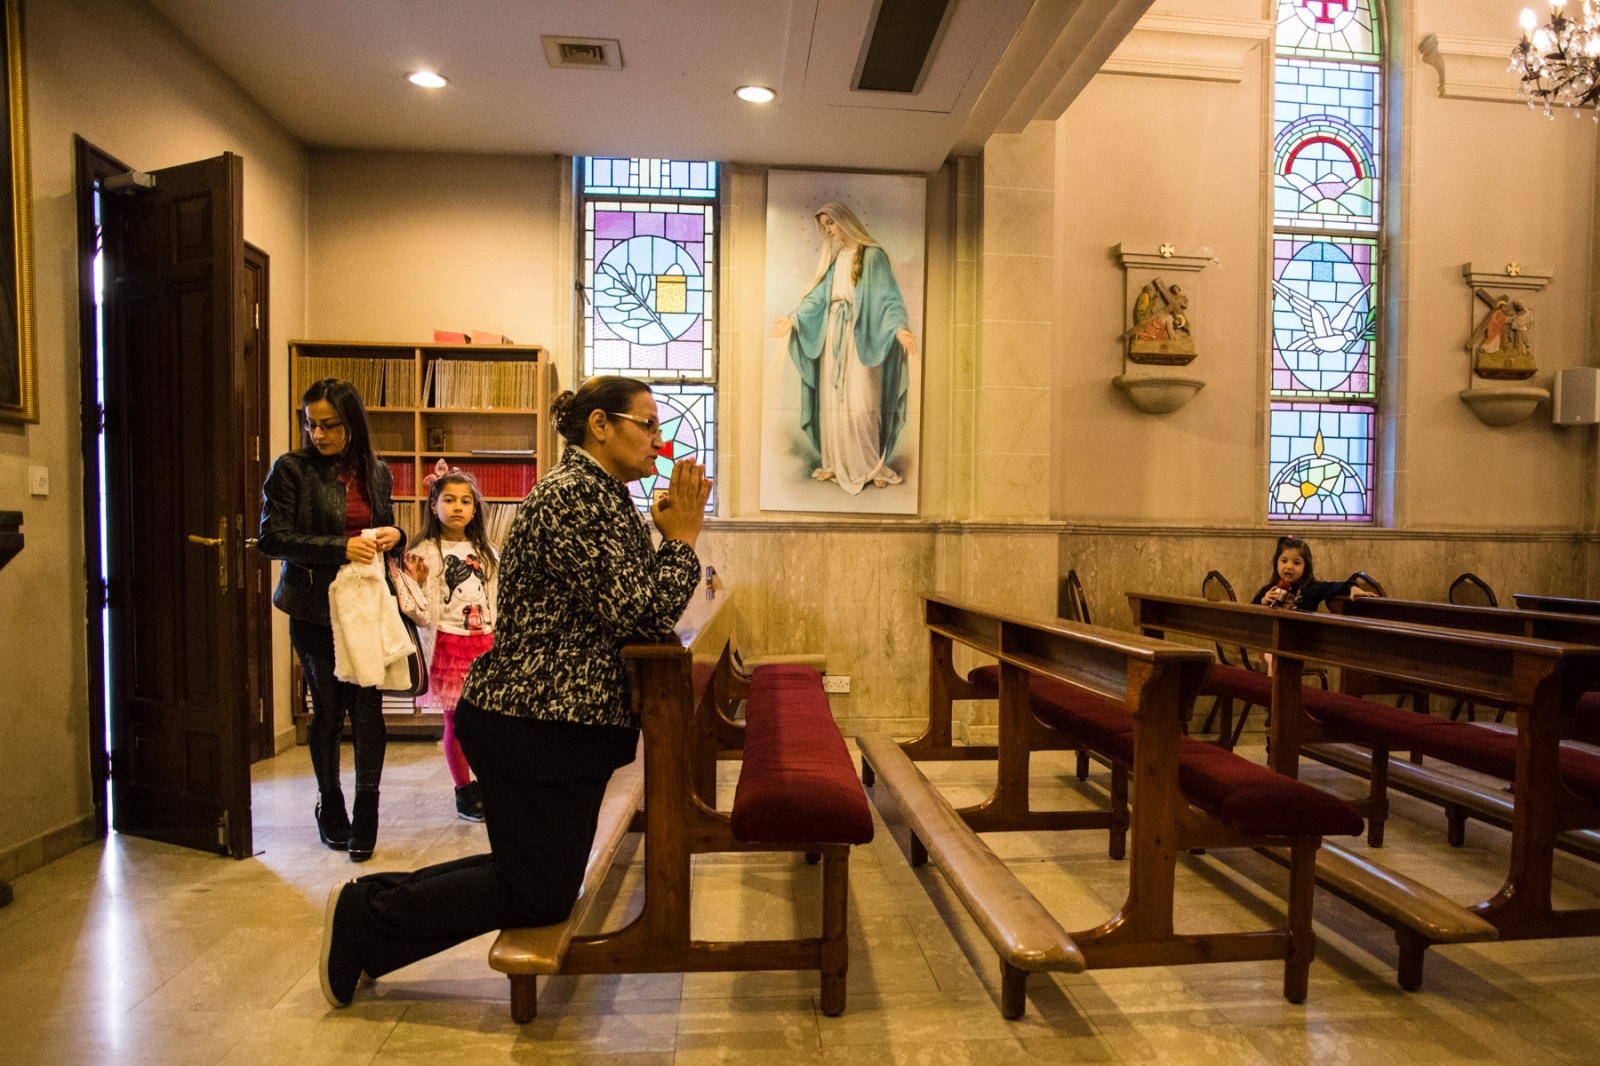 Farah (left), from Mosul, enters the church with her two daughters, Valentina, 7, and Faustina, 4. Farah was a civil engineer in Iraq, but now she and her husband are living off their savings, being unable to work in Jordan. She says the family have no plans to return to Mosul, saying it will still be too dangerous for Christians.